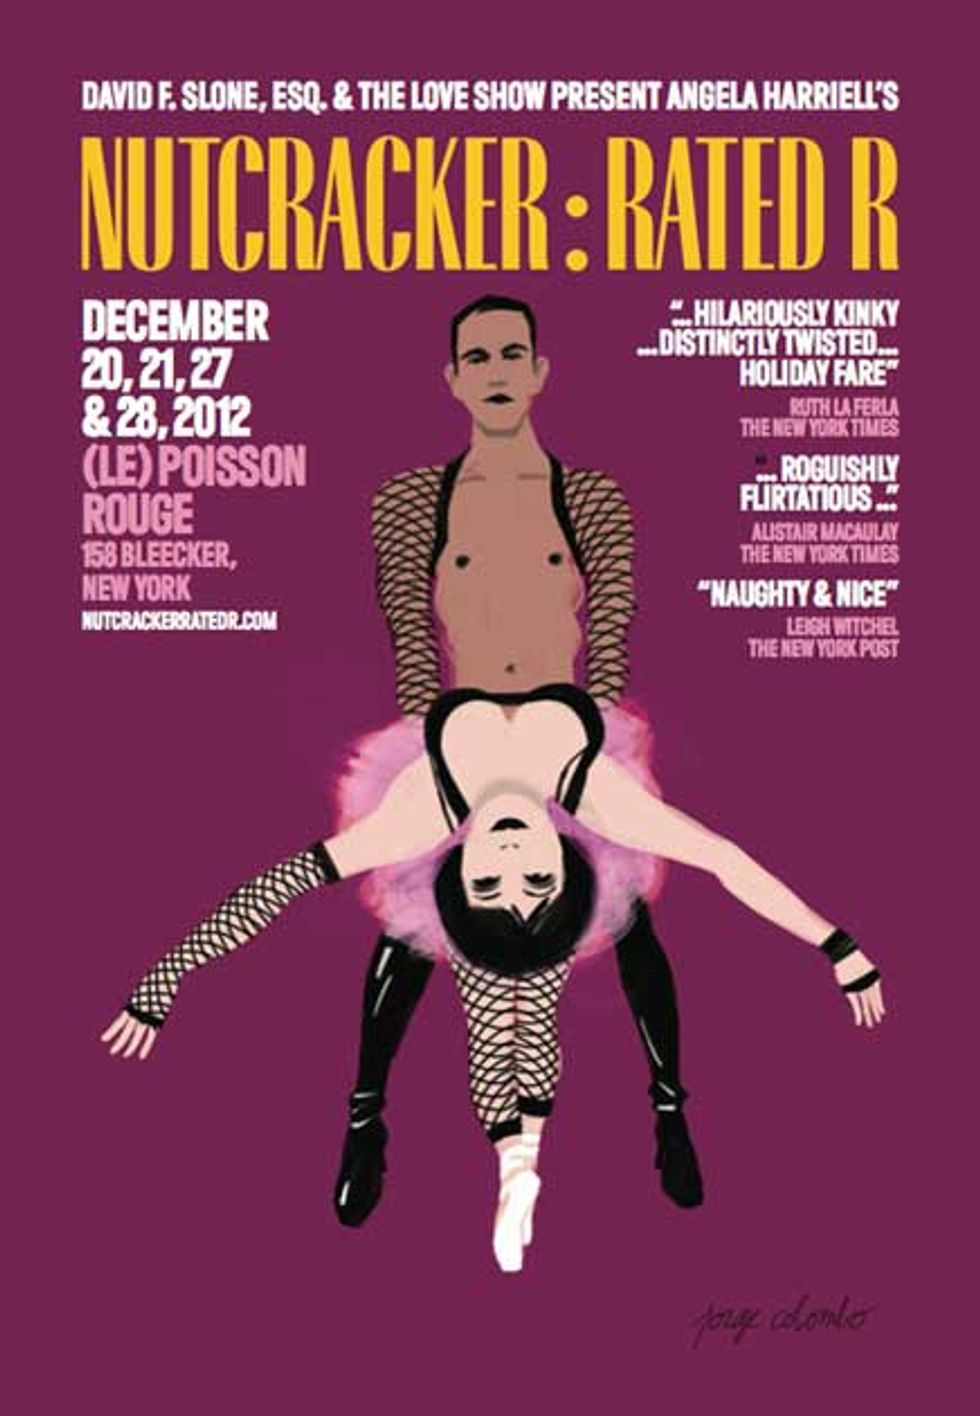 Nutcracker: Rated R and More Tonight in NYC